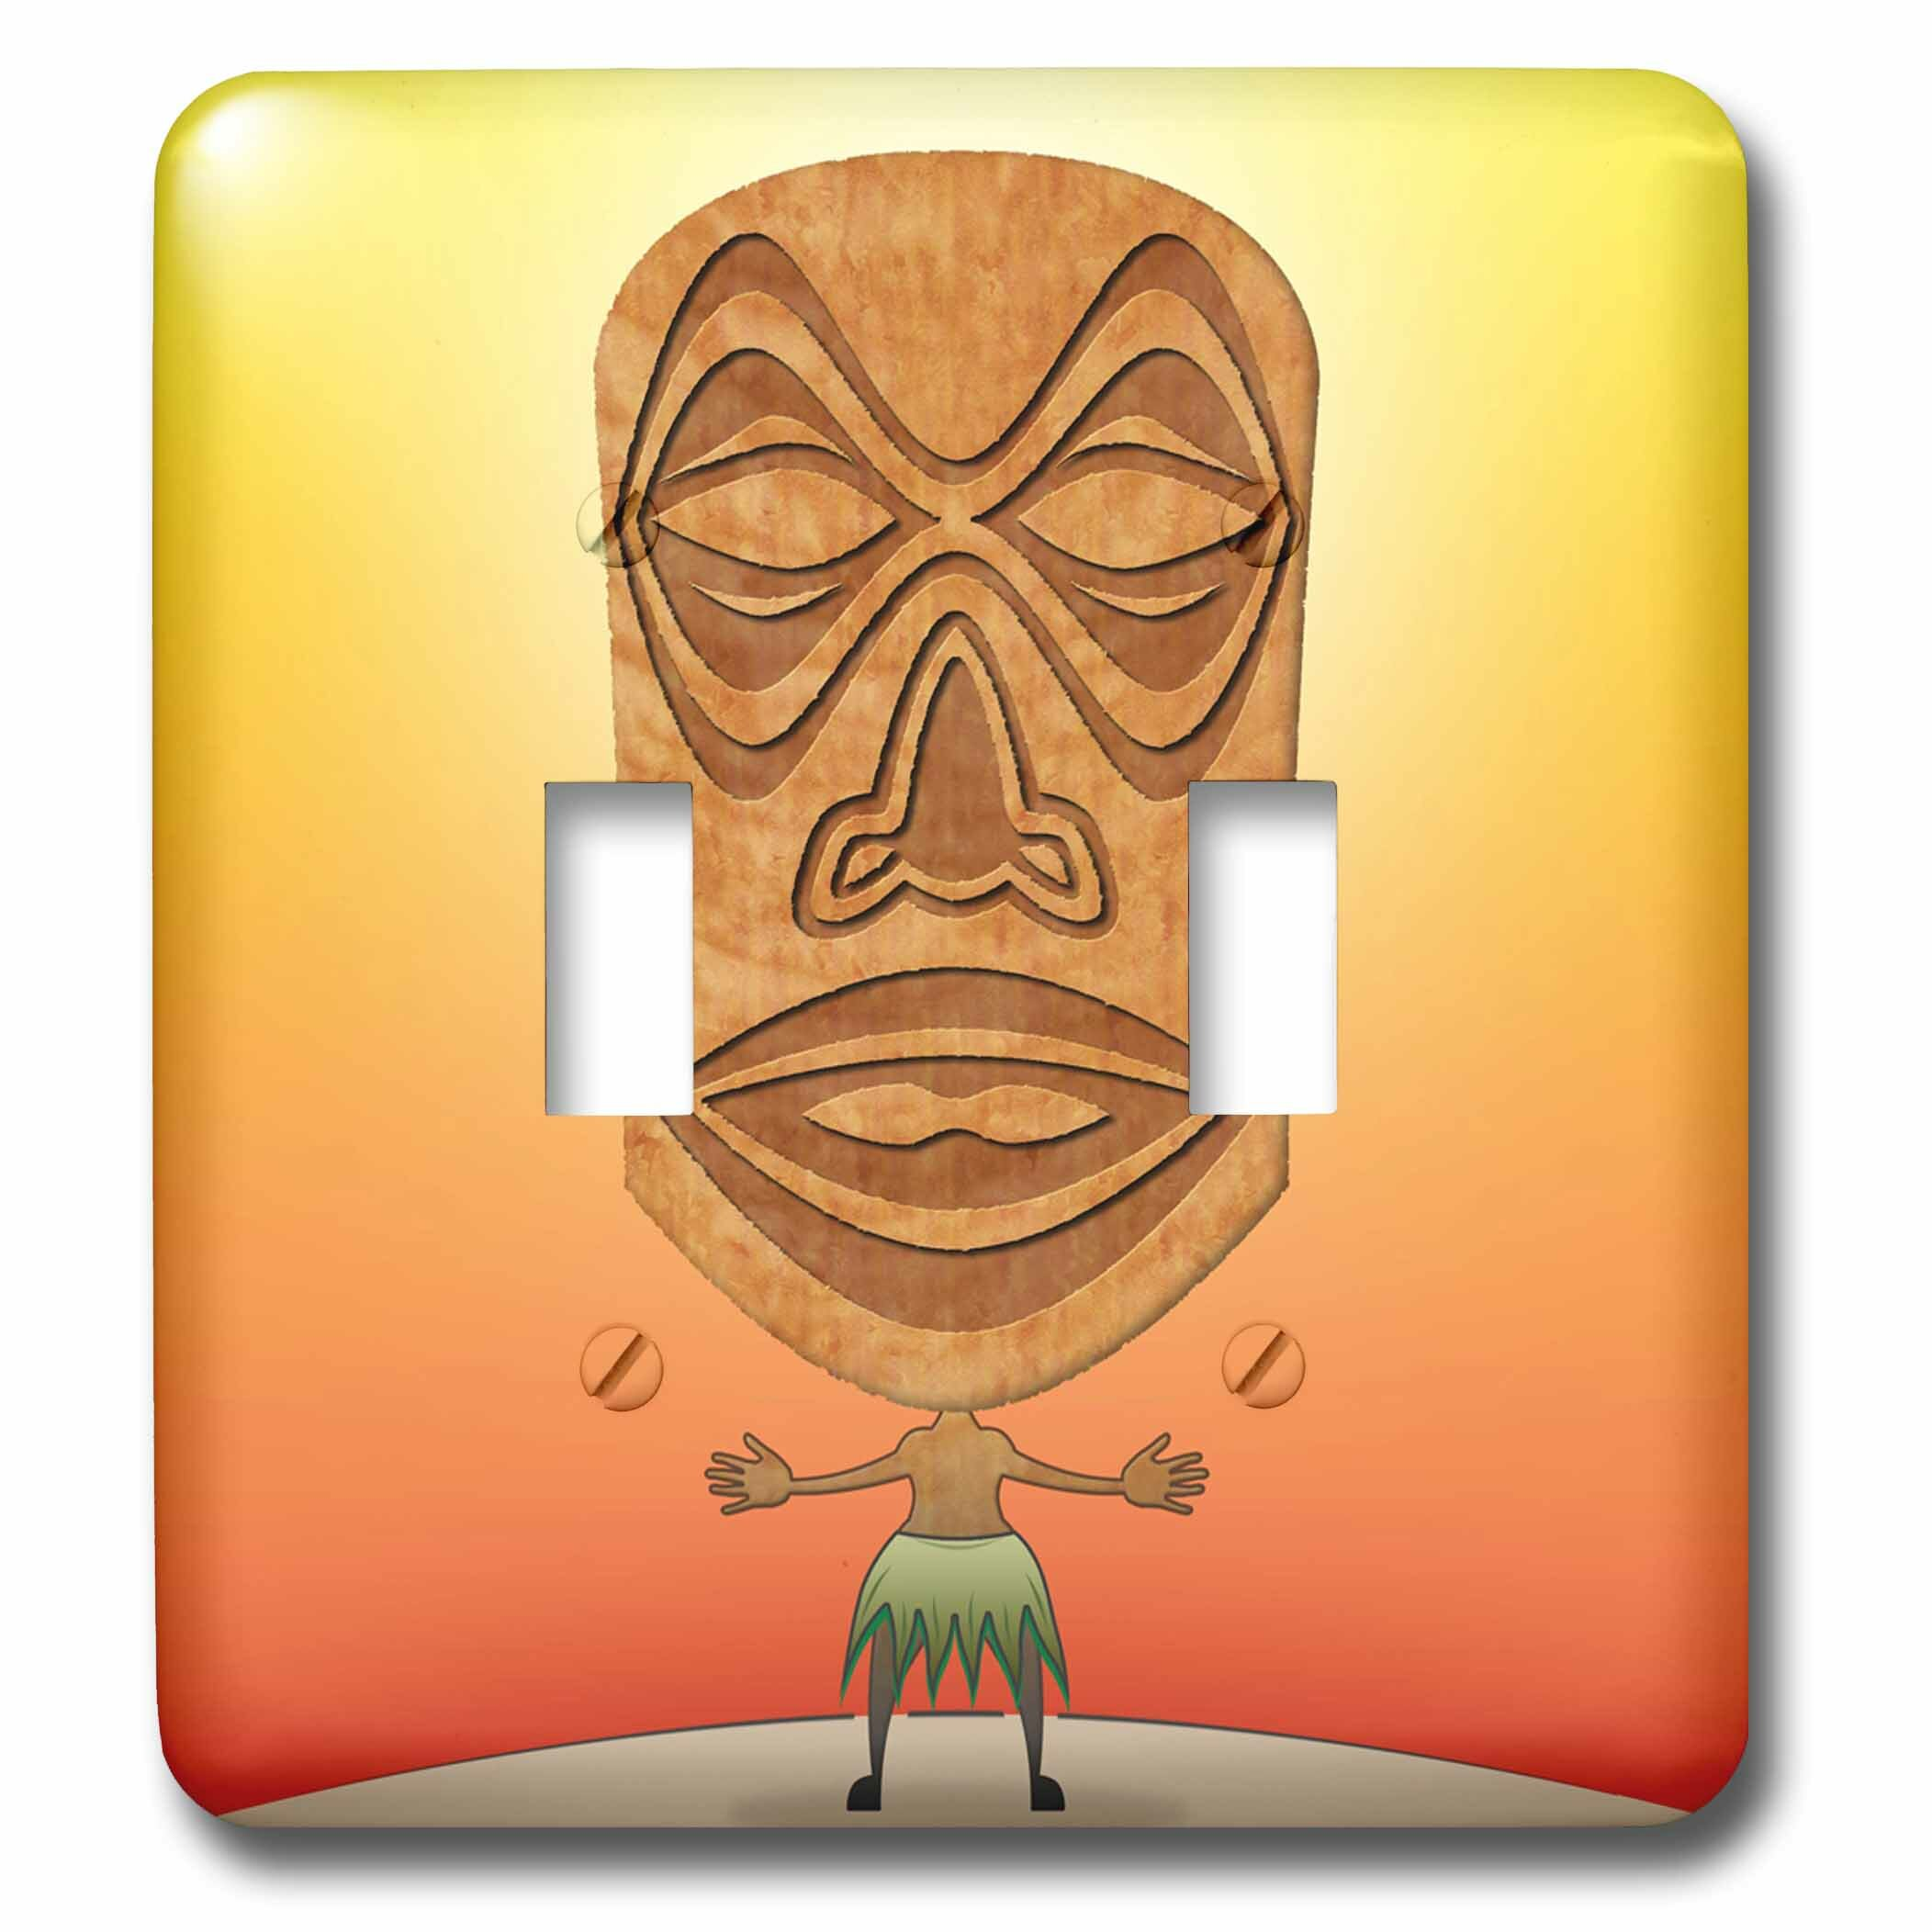 3drose Voodoo Tiki Head Voodoo Villager With Tribal Mask Standing In Tropical Environment 2 Gang Toggle Light Switch Wall Plate Wayfair